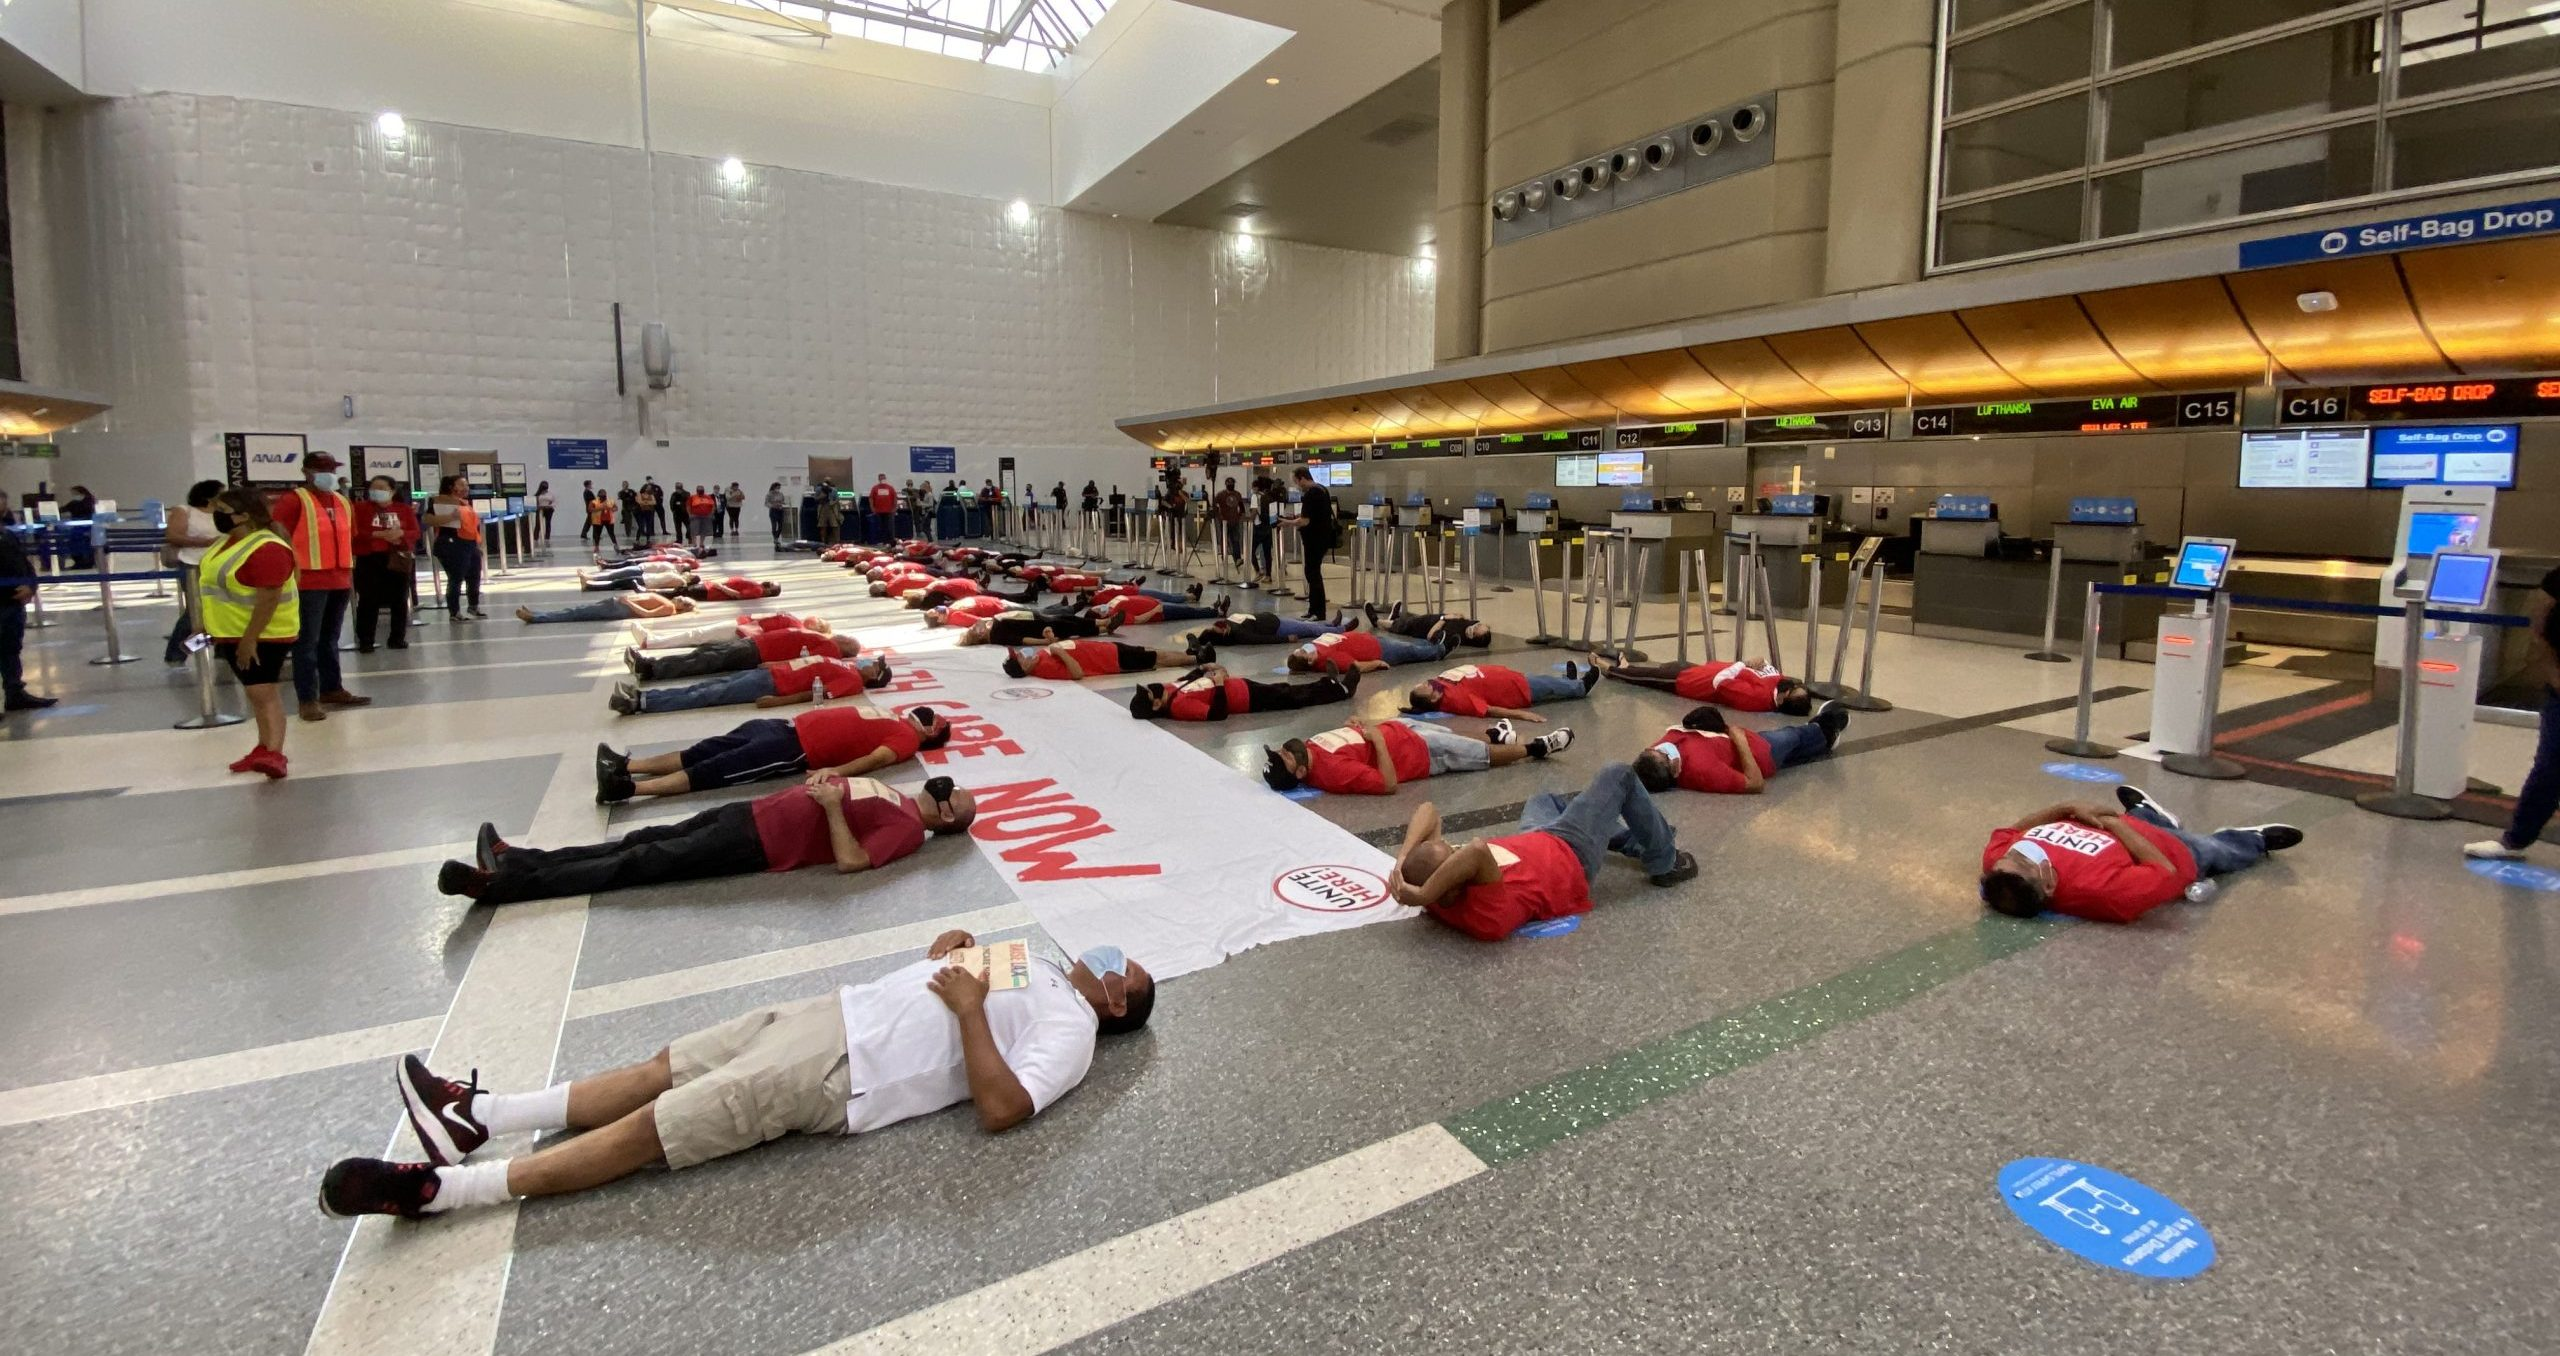 Frontline LAX Workers Stage Die-In for Extended Healthcare Amid COVID-19 Health Crisis